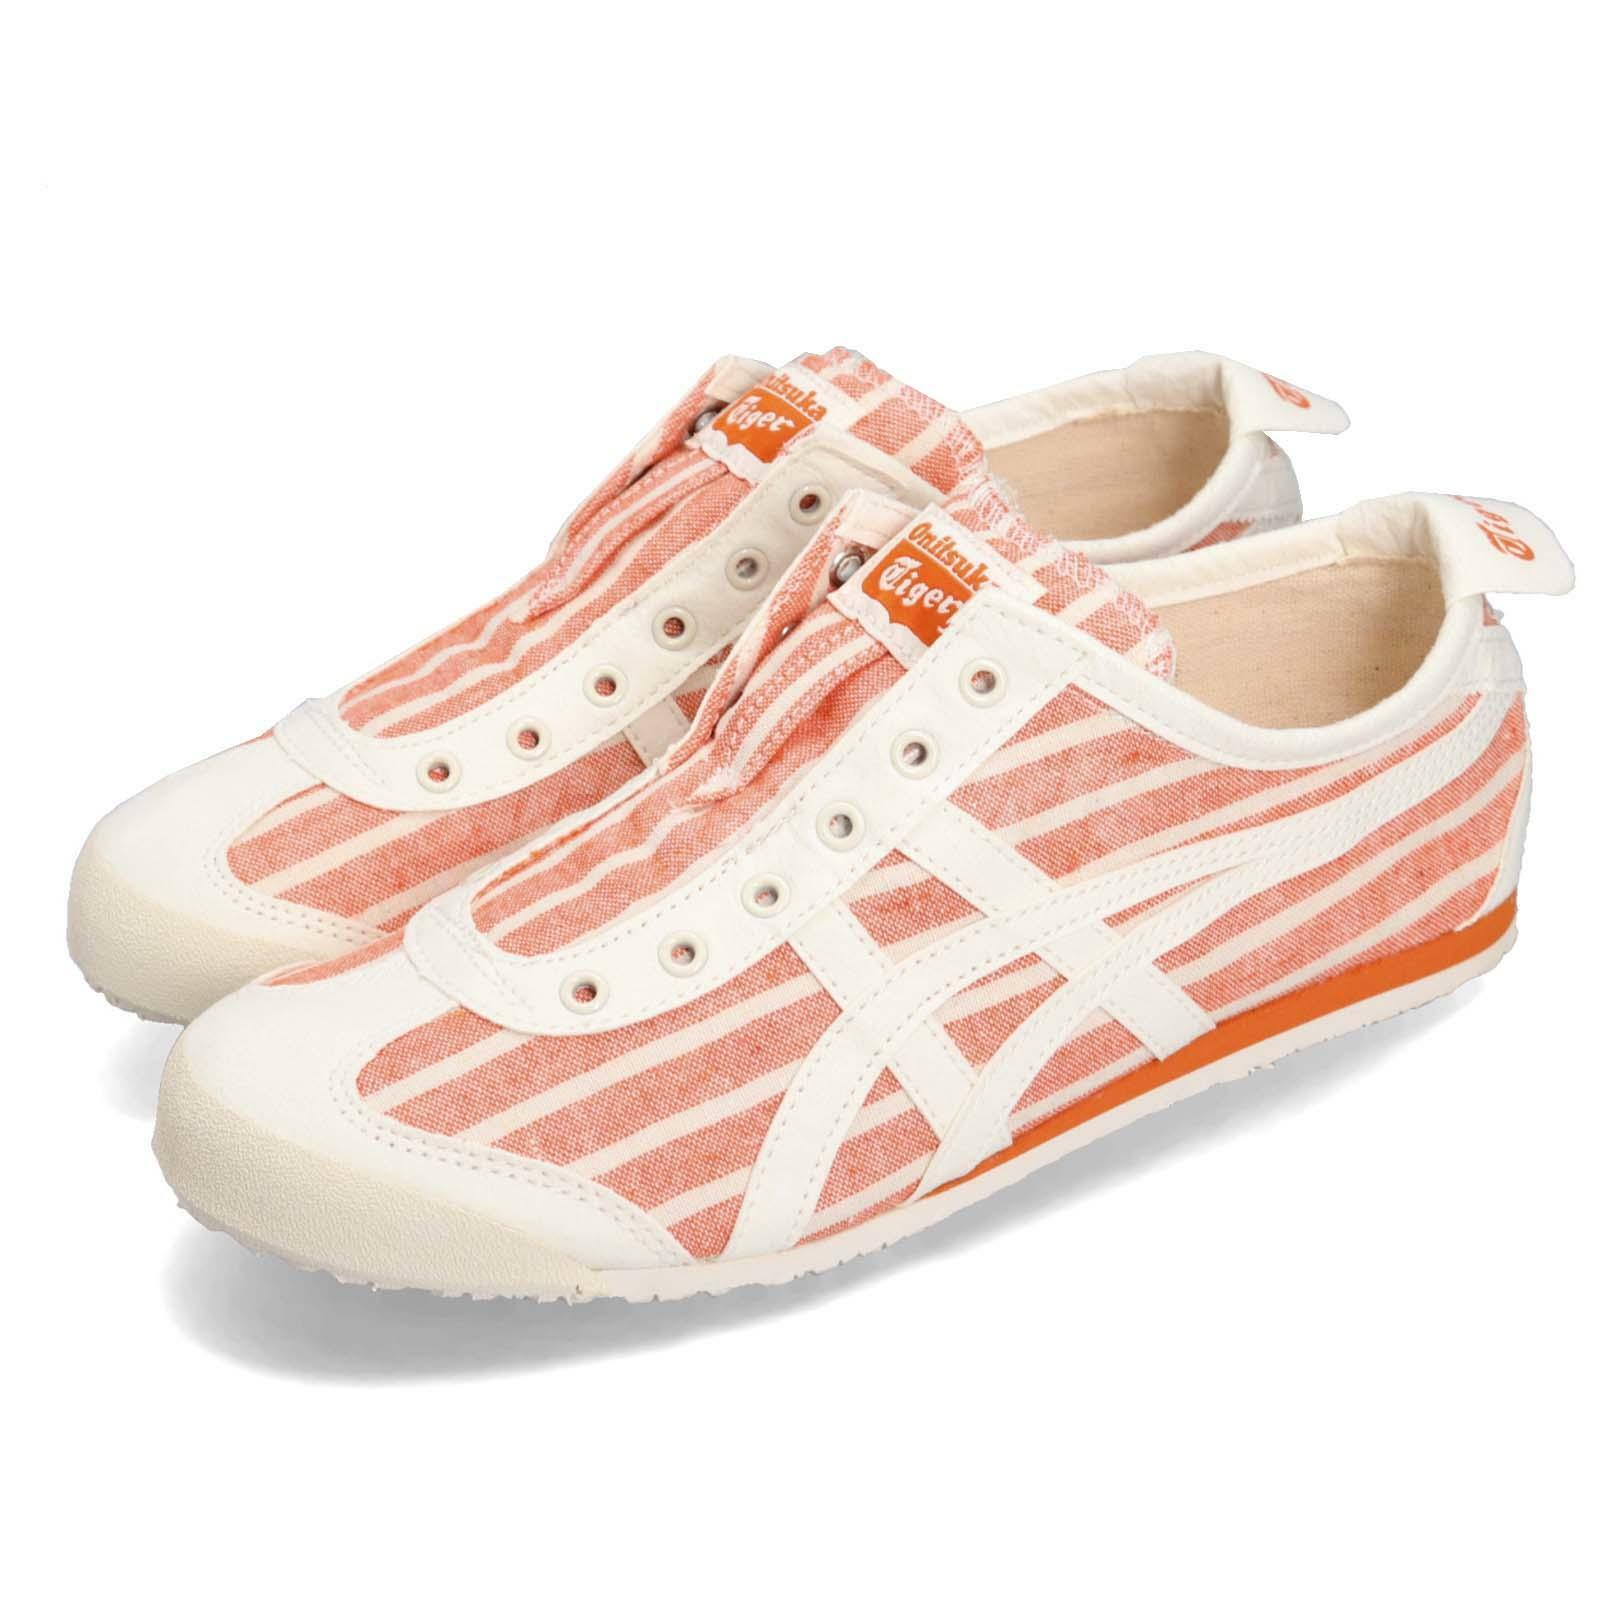 Asics Onitsuka Tiger Mexico 66 Slip On orange Cream Men Women shoes 1183A239-801